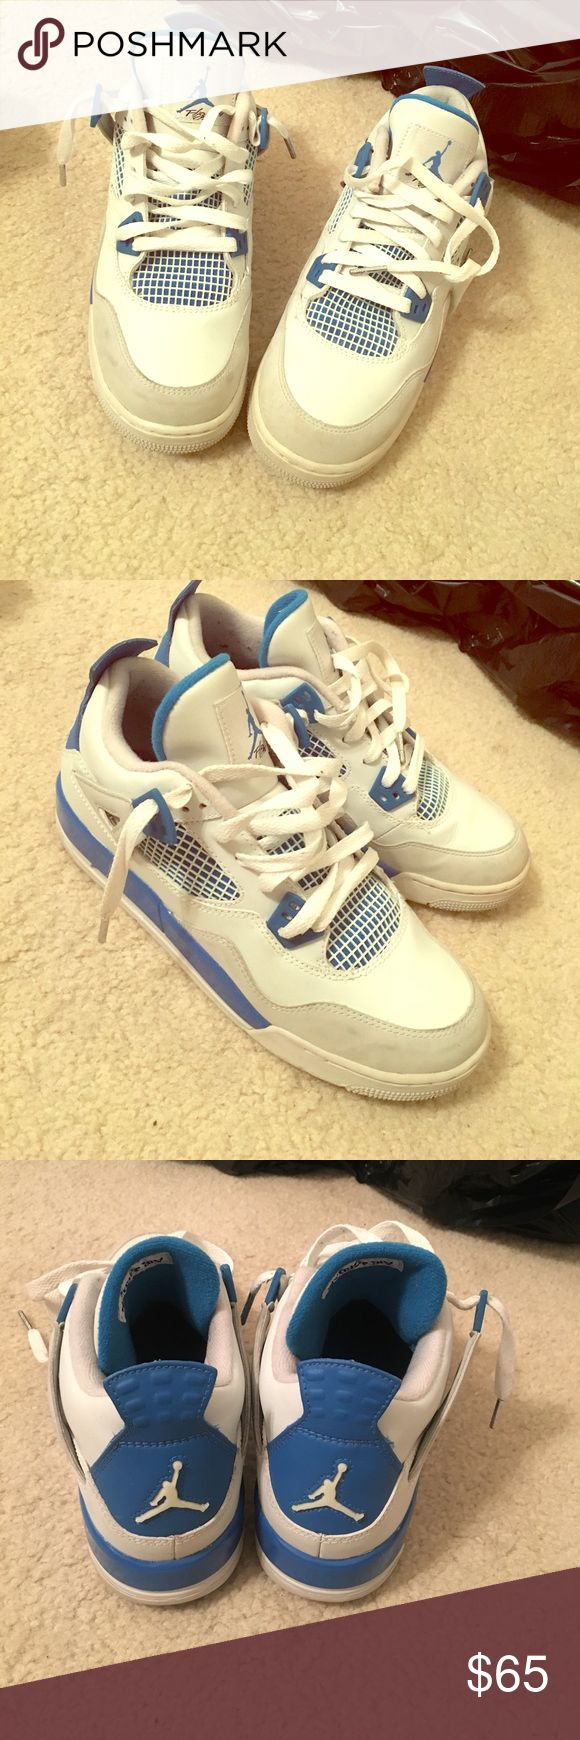 Blue and white retro Jordan 4 Blue and white low top retro Jordan sneaker Jordan Shoes Sneakers